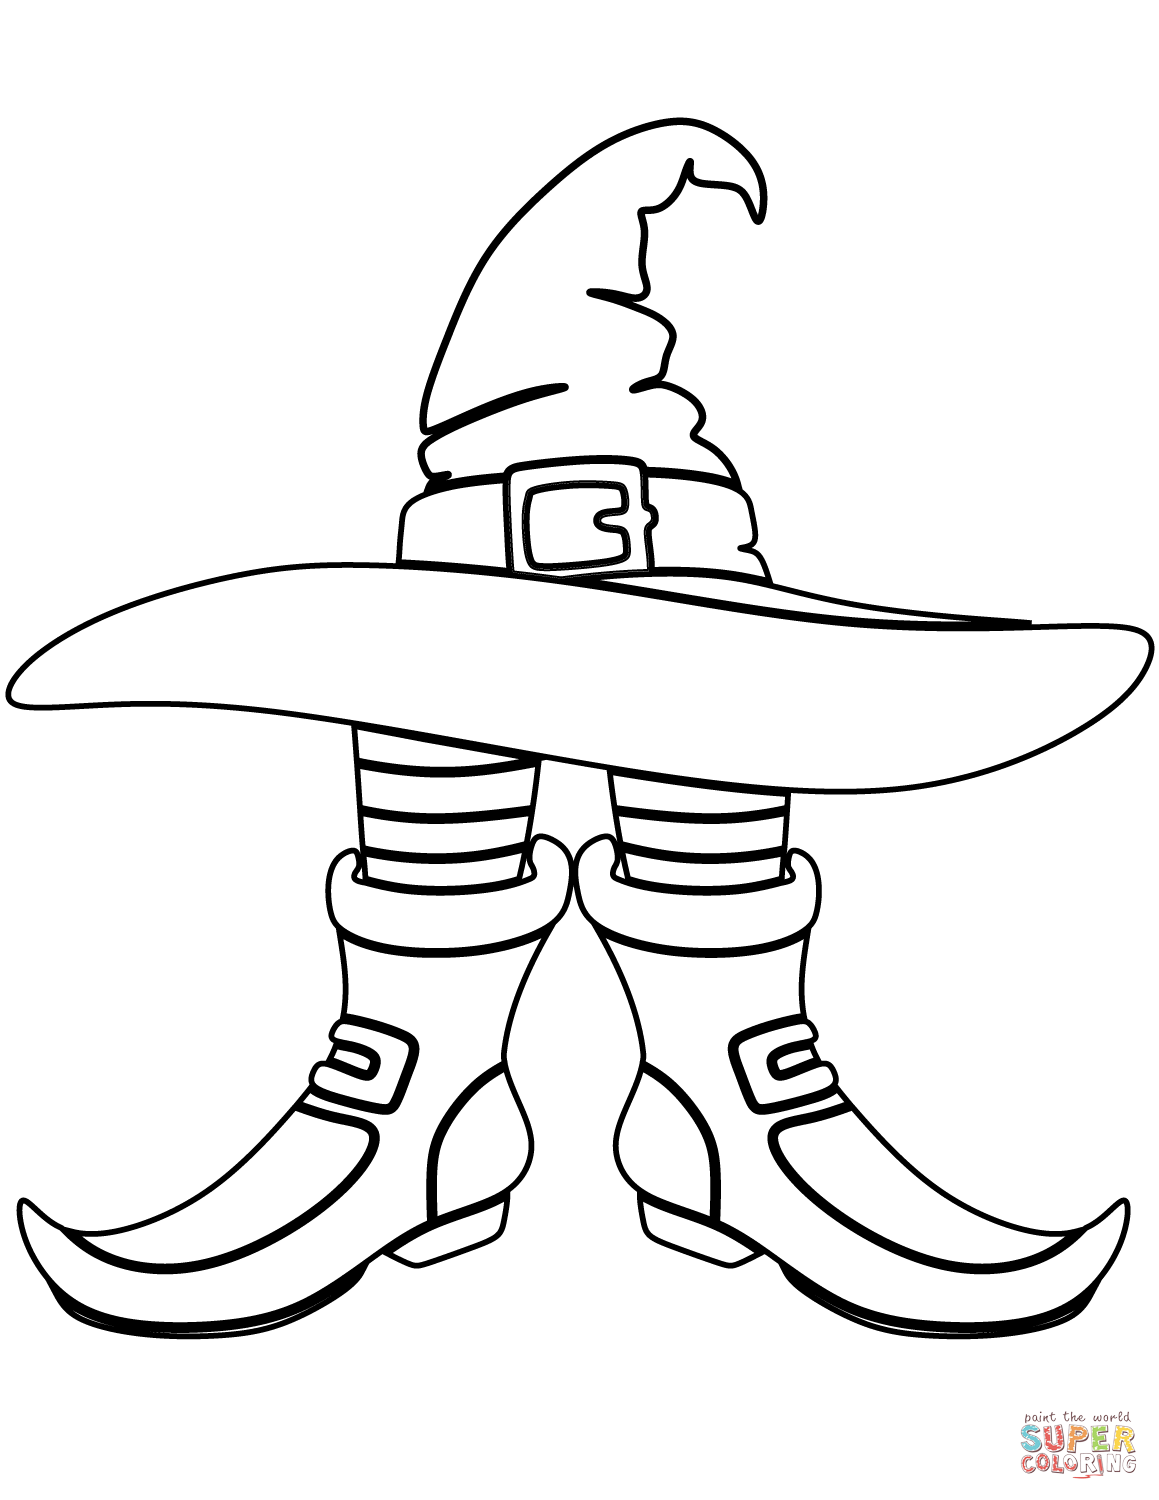 Santa Boots Coloring Pages With Witch Hat And Page Free Printable